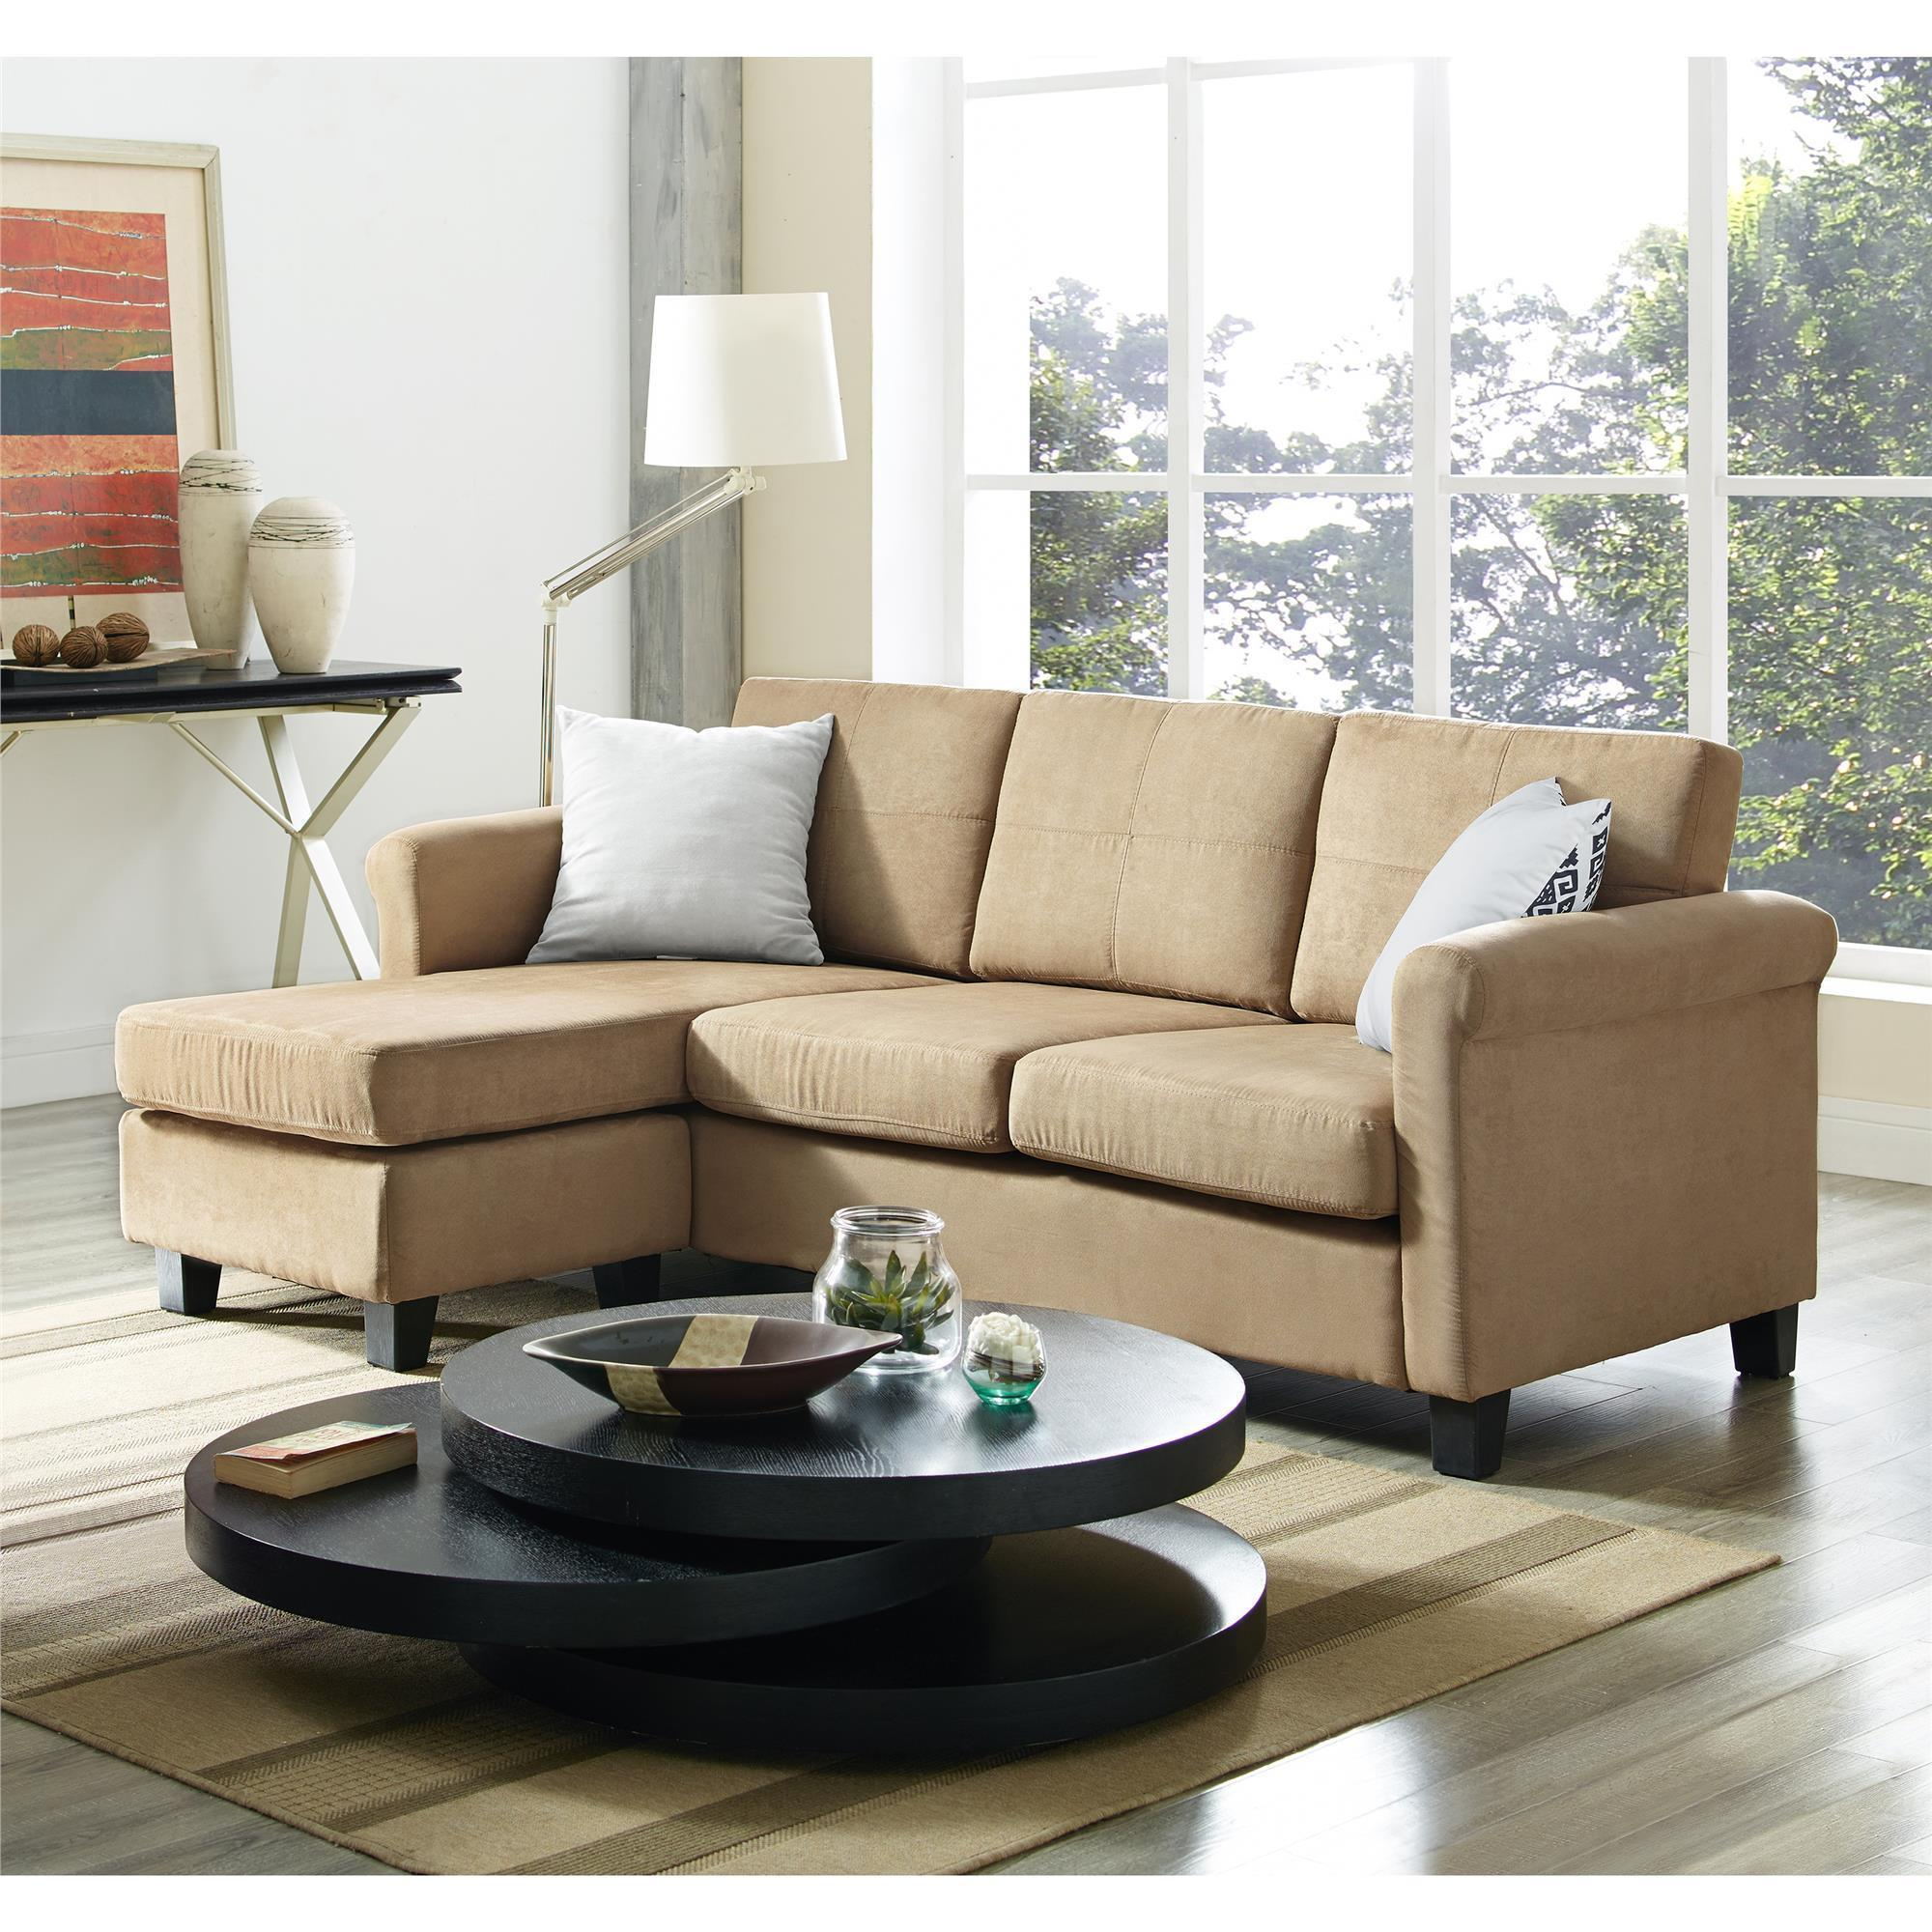 Dorel Living Small Spaces Microfiber Faux Leather Configurable